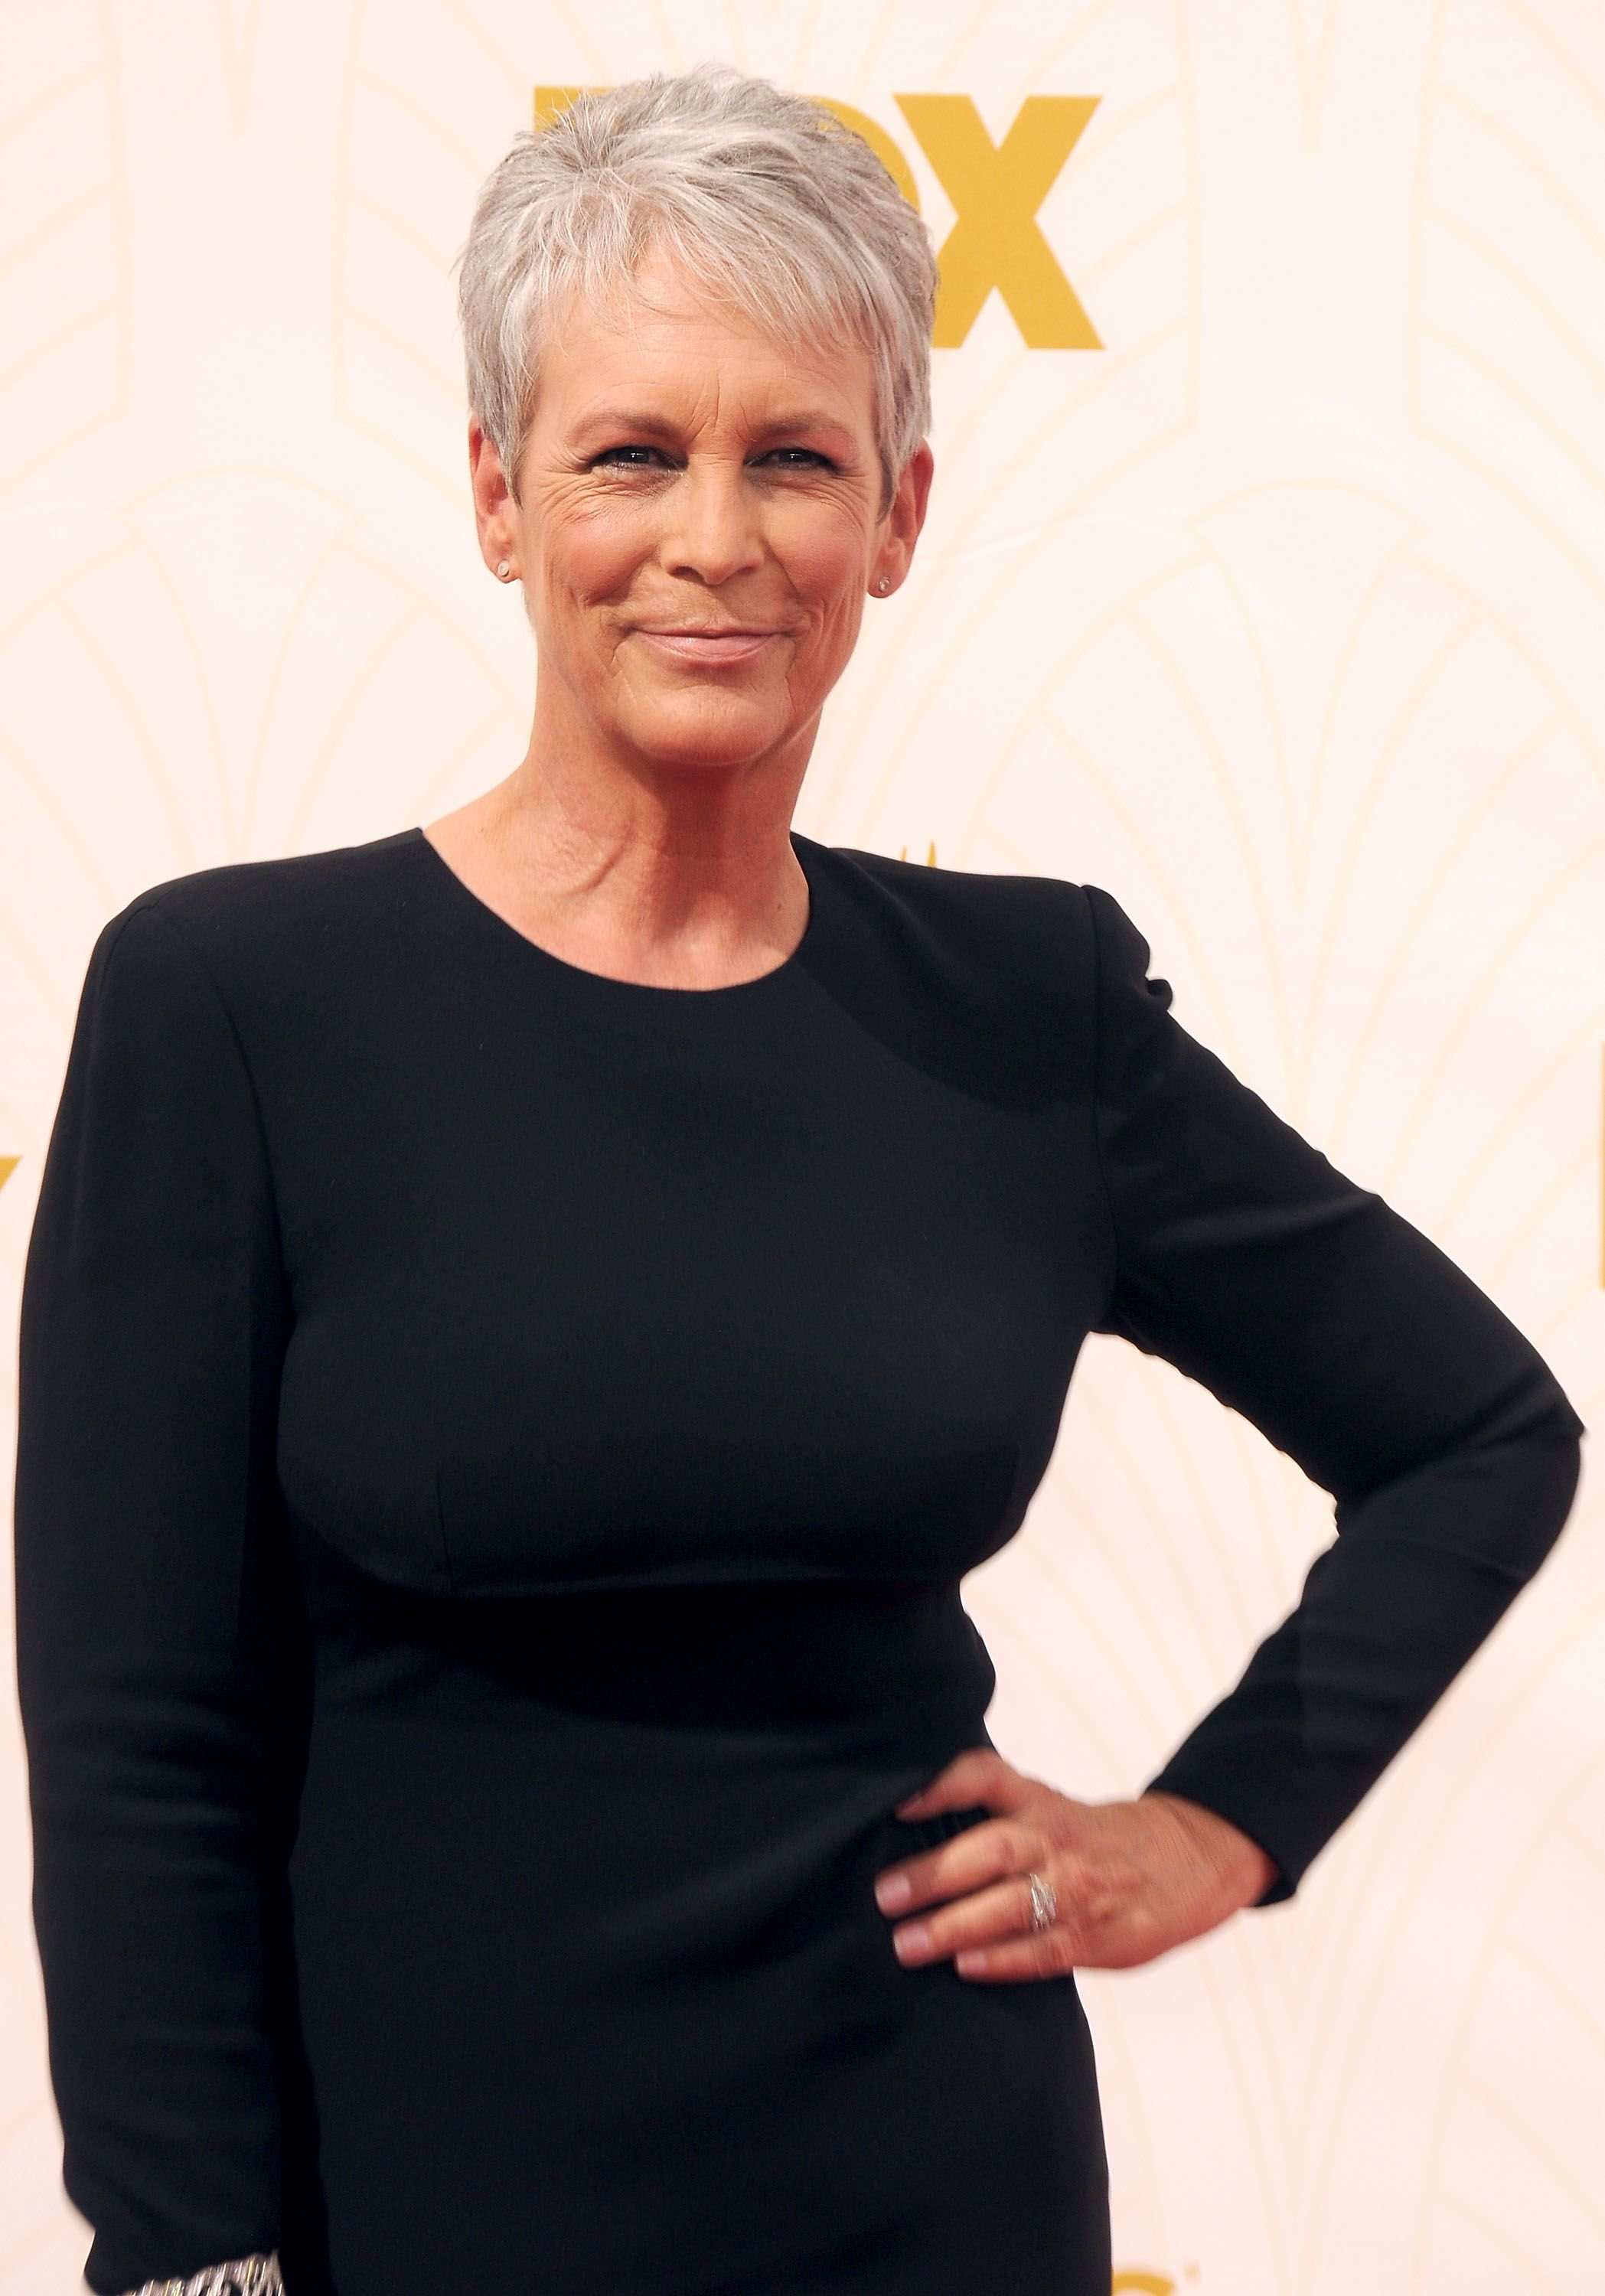 Jamie Lee Curtis during the 67th Annual Primetime Emmy Awards at the Microsoft Theater on September 20, 2015 in Los Angeles, California. | Source: Getty Images